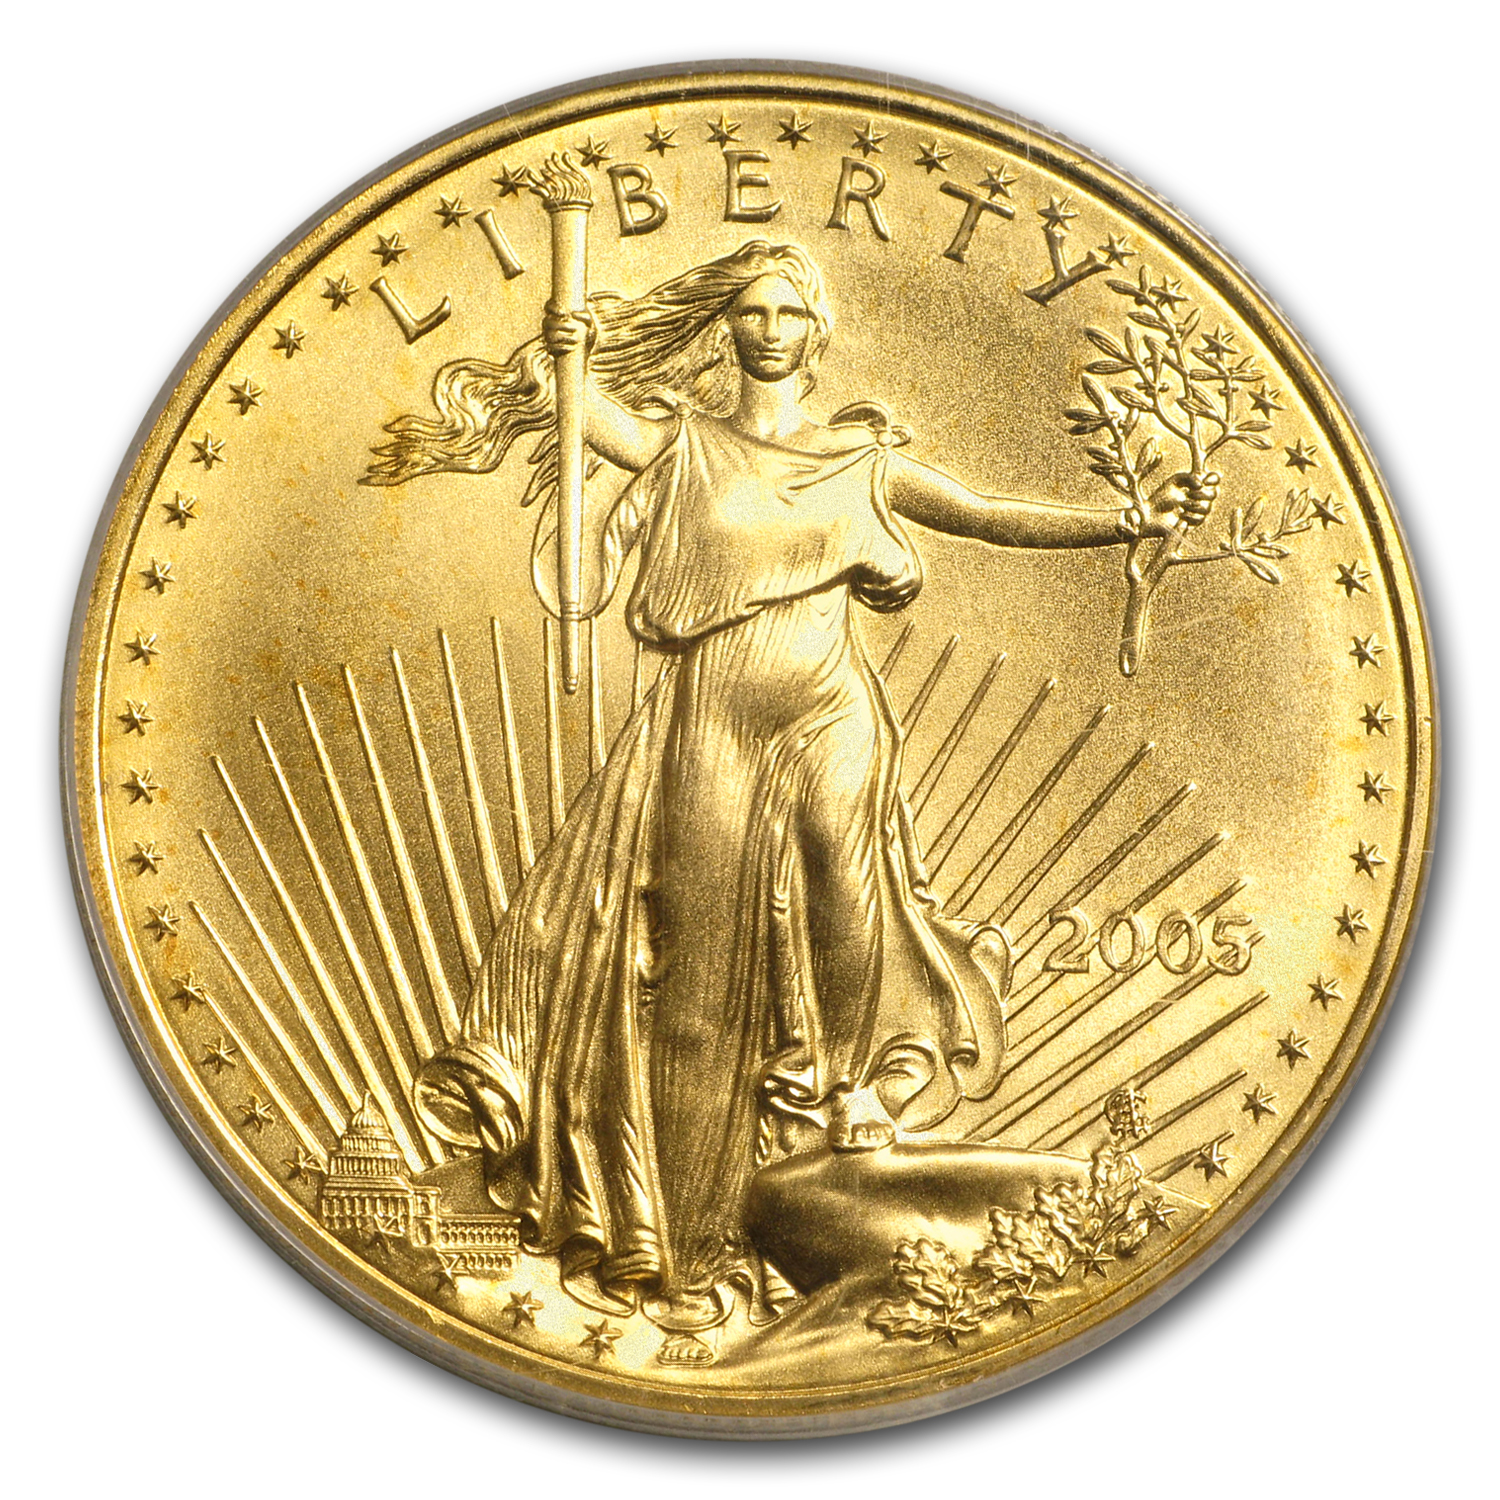 2005 1 oz Gold American Eagle MS-70 PCGS (20th Anniversary)